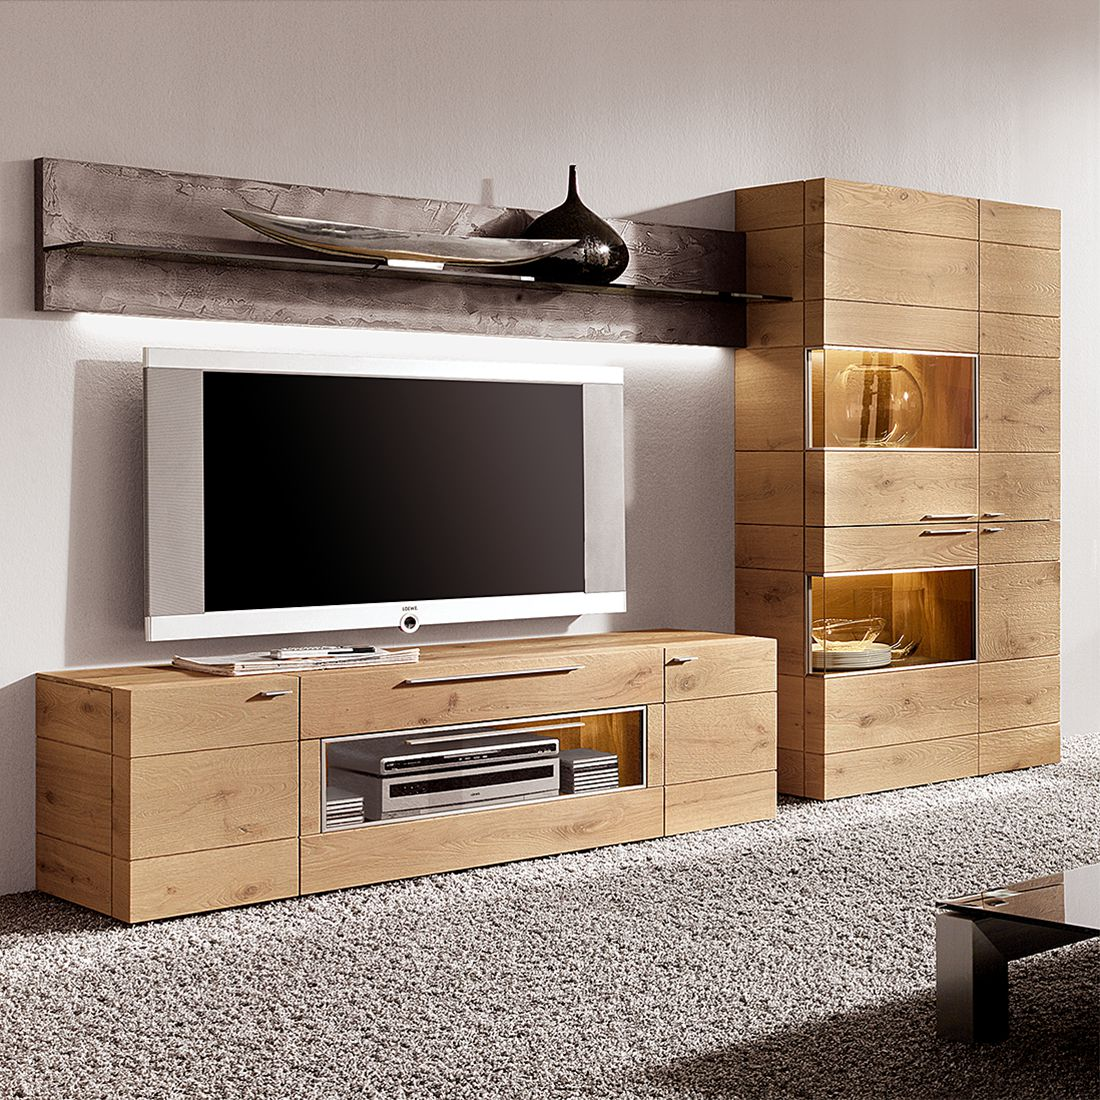 sideboard pur ii eiche massiv ohne beleuchtung hartmann online bestellen. Black Bedroom Furniture Sets. Home Design Ideas